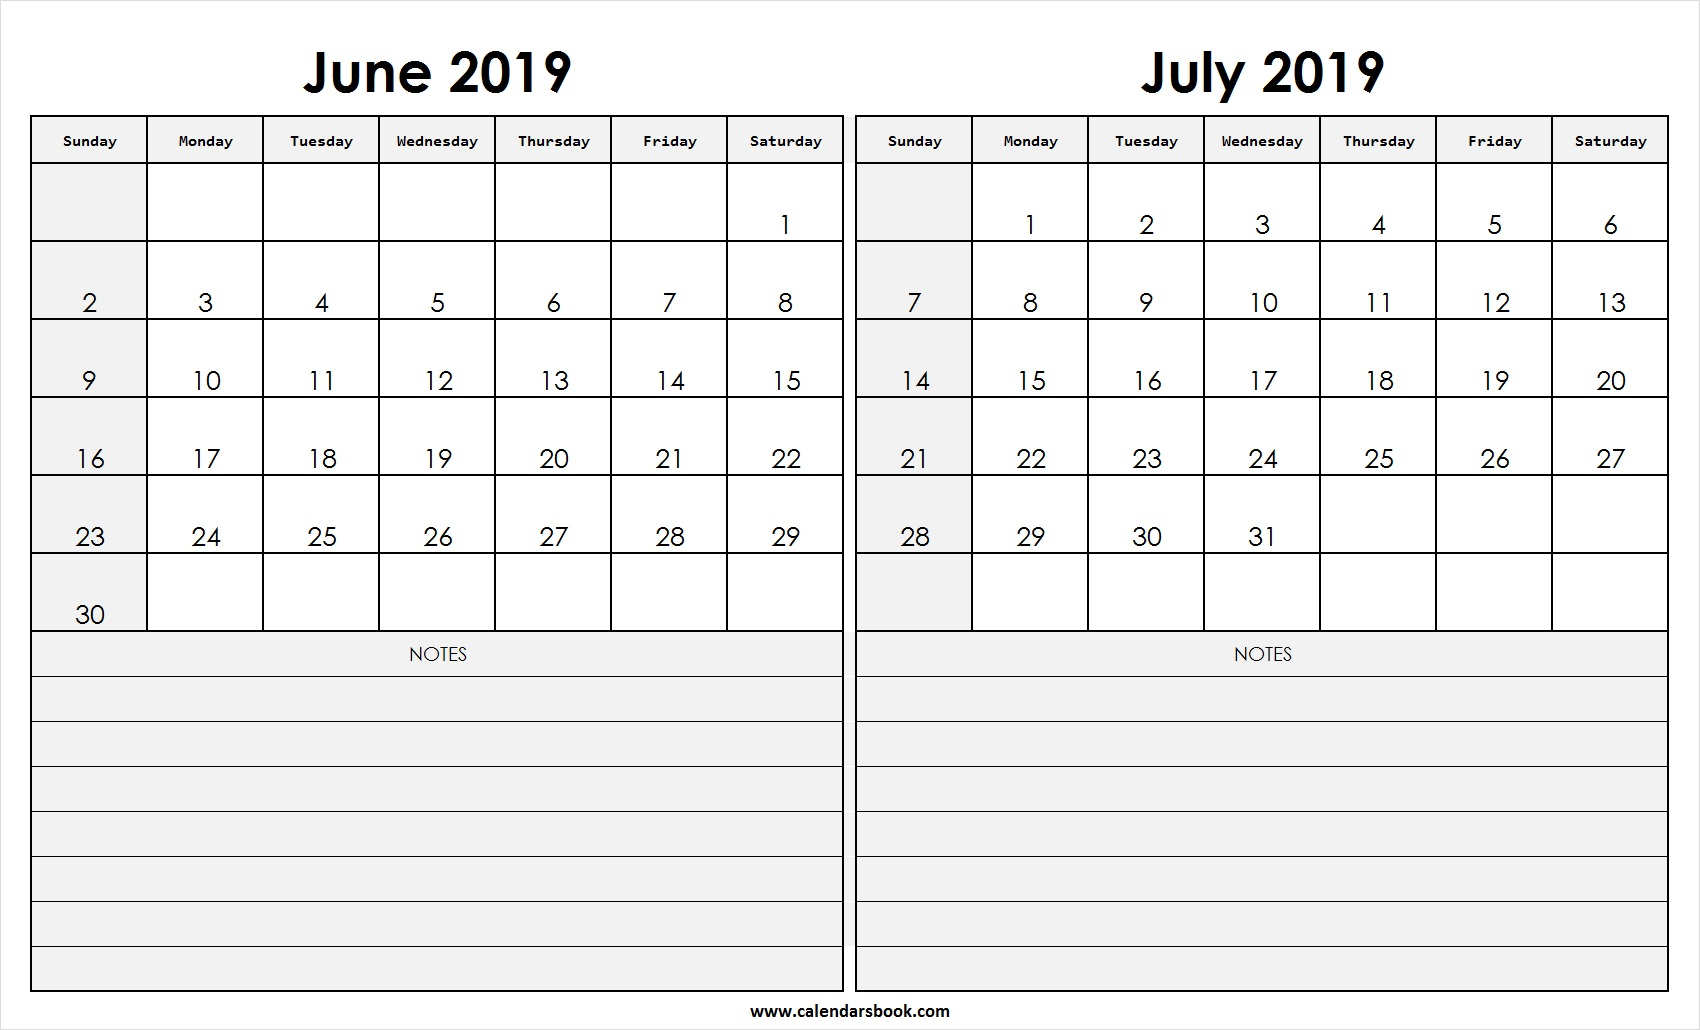 Print June July 2019 Calendar Template | 2 Month Calendar within 2 Month Calendar Template June July